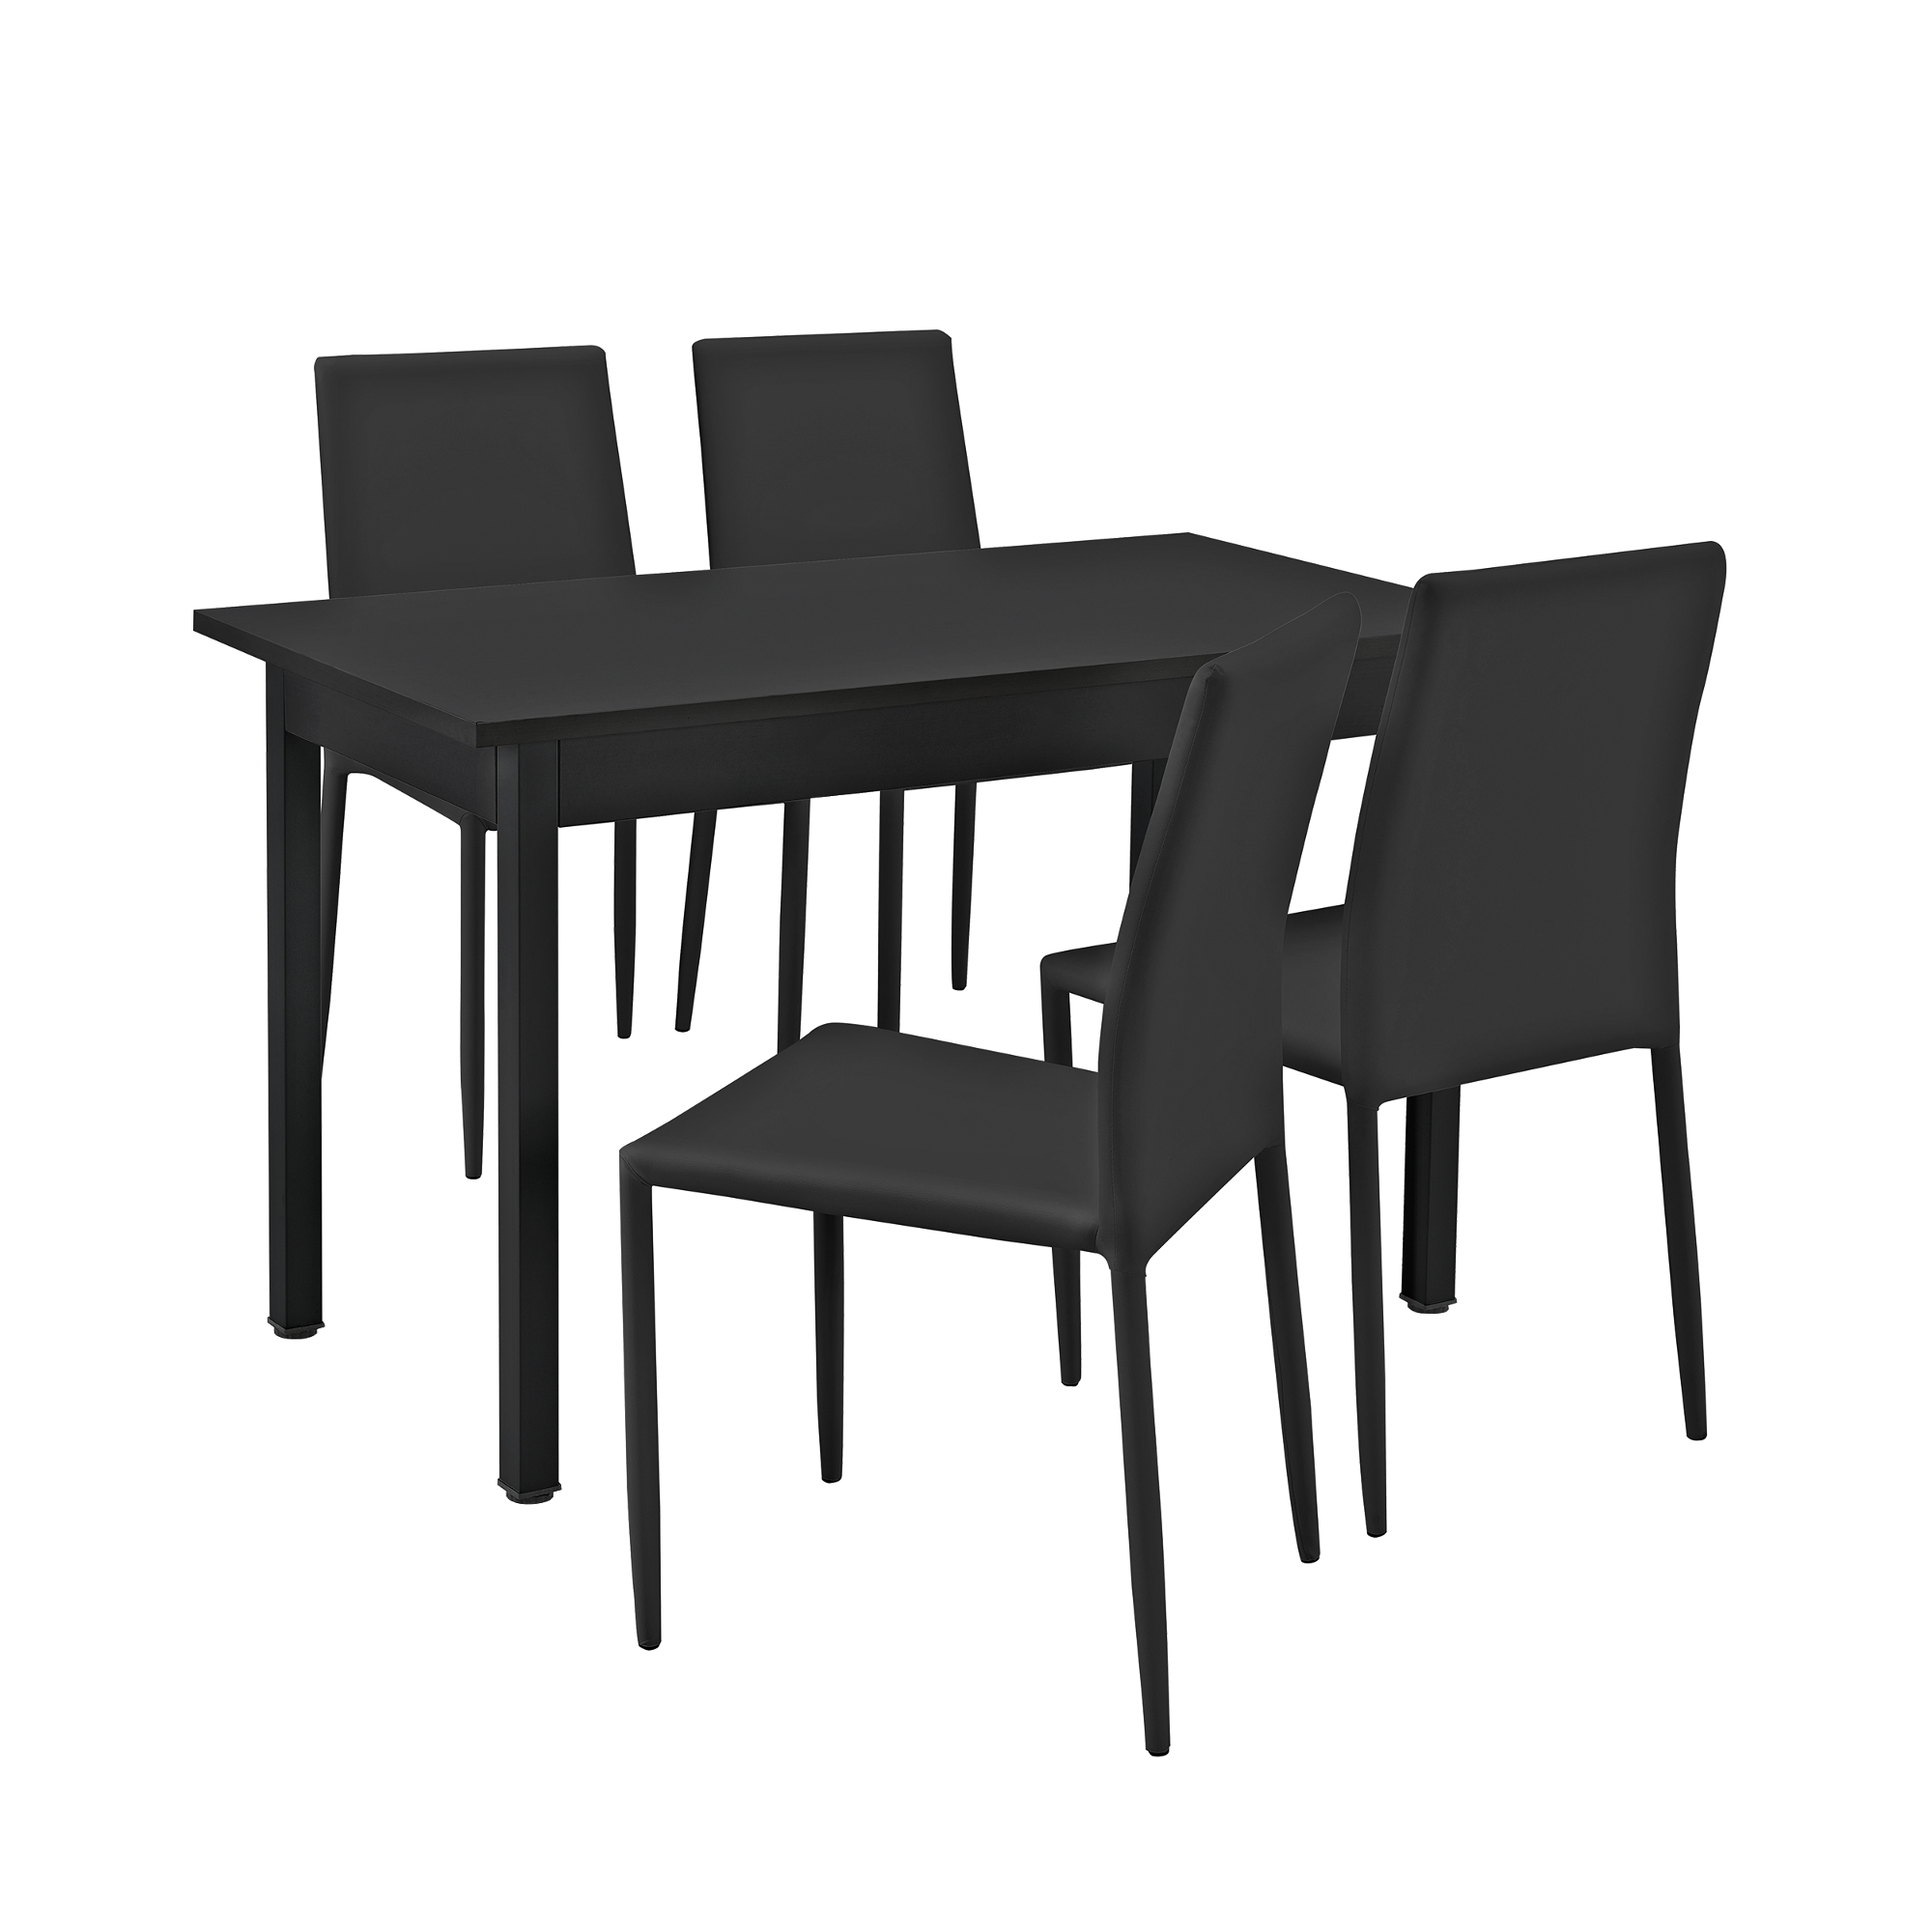 table de manger avec 4 chaises noir 120x60 table cuisine set de table ebay. Black Bedroom Furniture Sets. Home Design Ideas